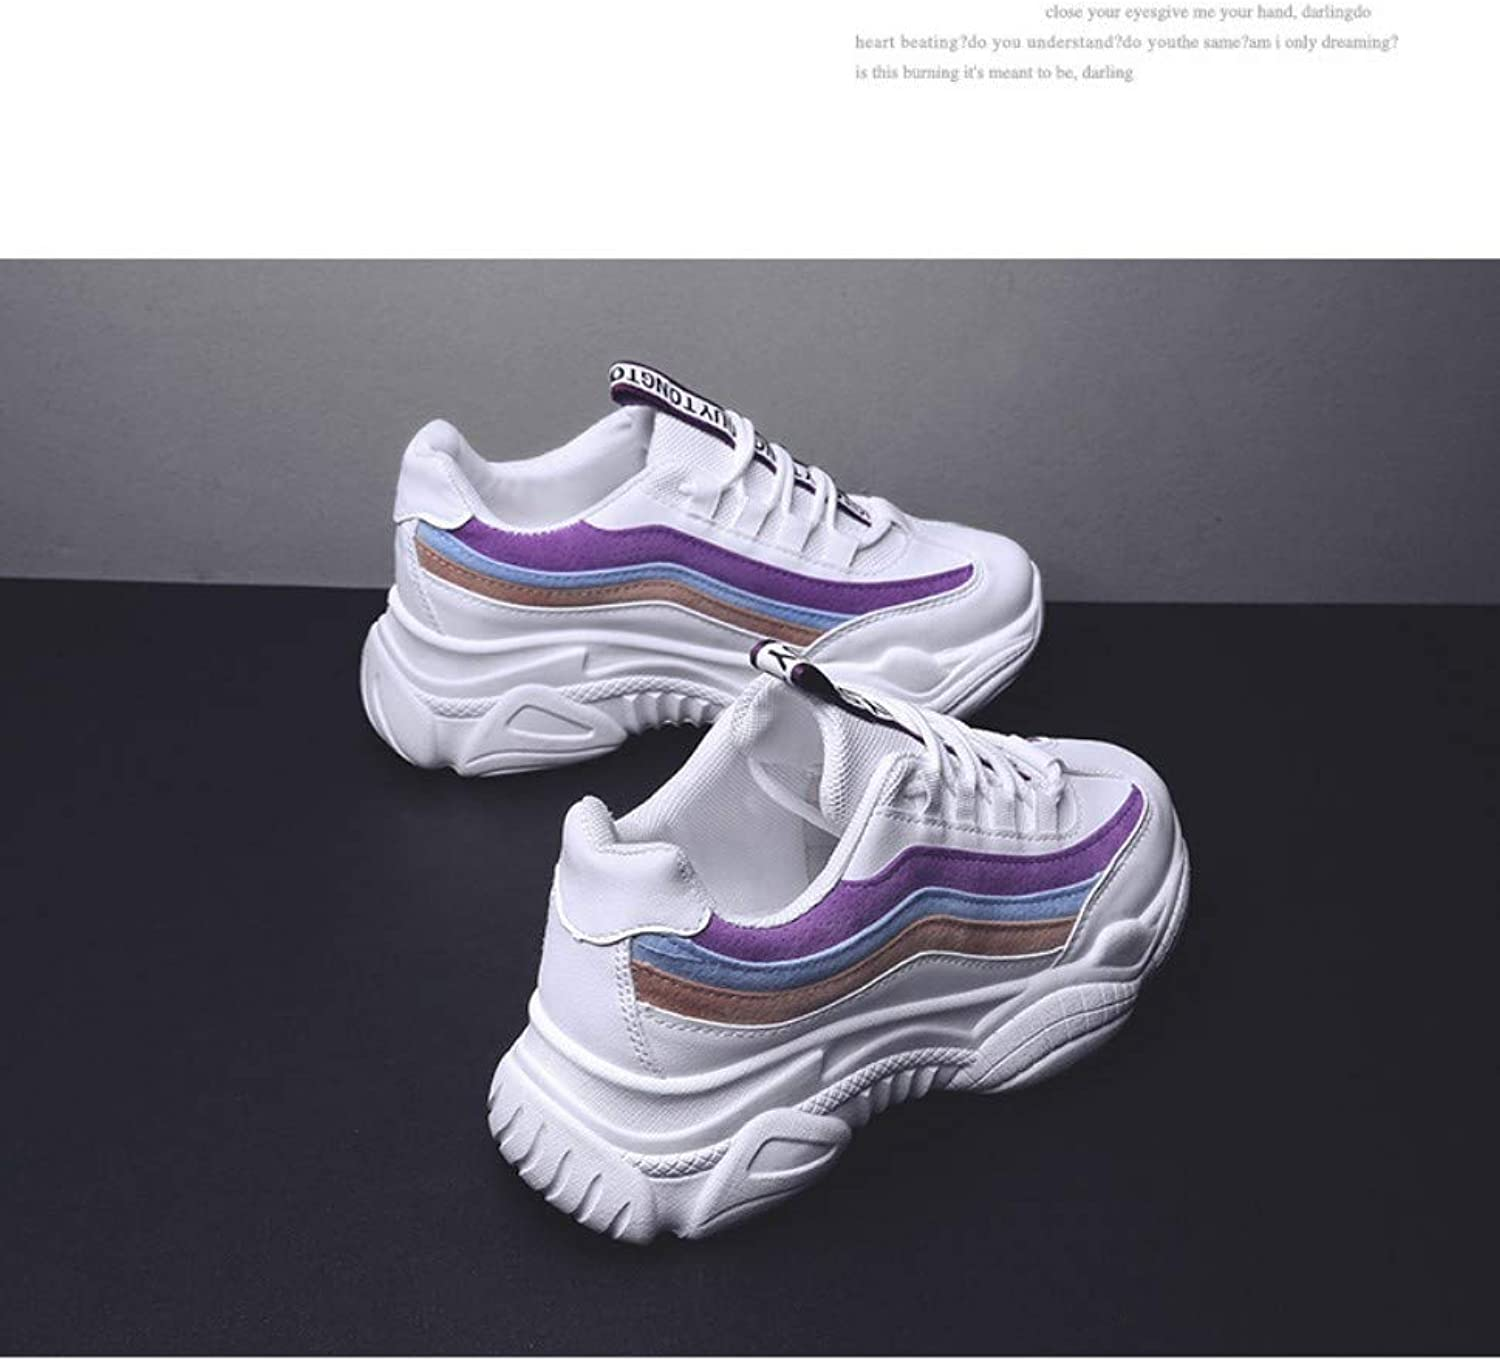 ZHIJINLI Sports shoes single shoes training shoes casual shoes work shoes fitness shoes fashion lightweight safety shoes, 38.5EU